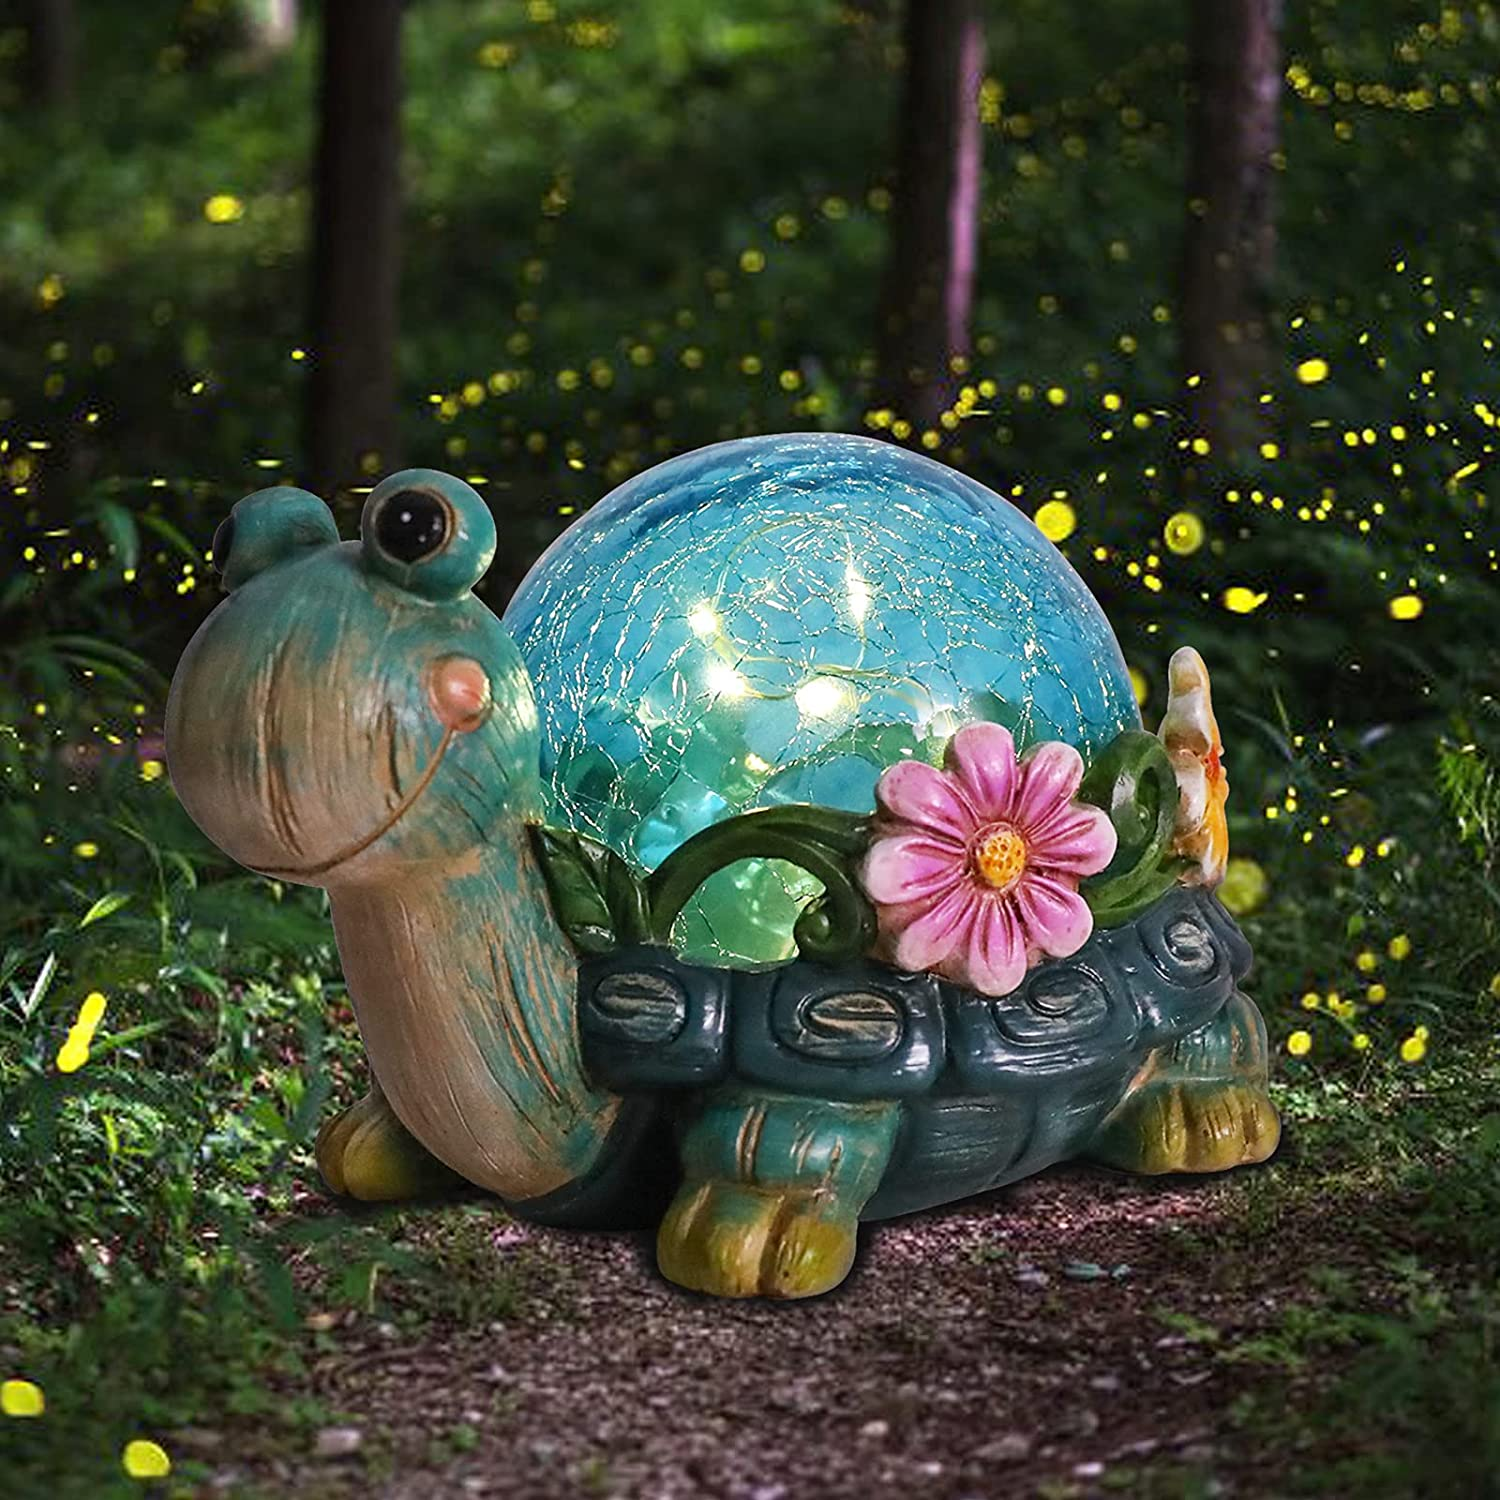 Solar Garden Statues Outdoor Figurines - Turtle Lawn Ornament with Solar Lights Cracked Glass Outdoor Decor for Patio Yard Decorations